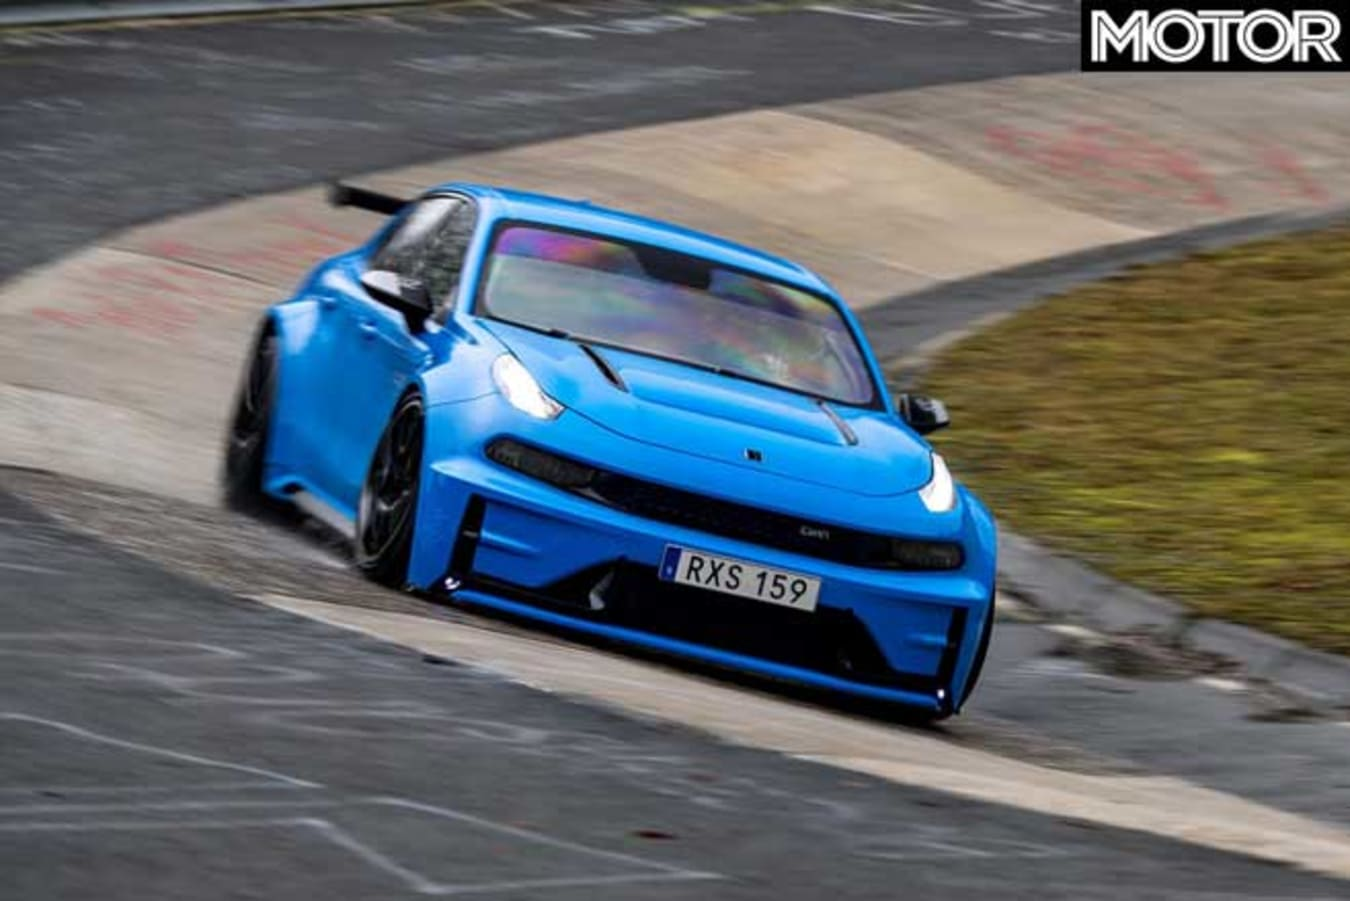 Lynk Co 03 Cyan Concept FWD Nurburgring Record Carousell Jpg